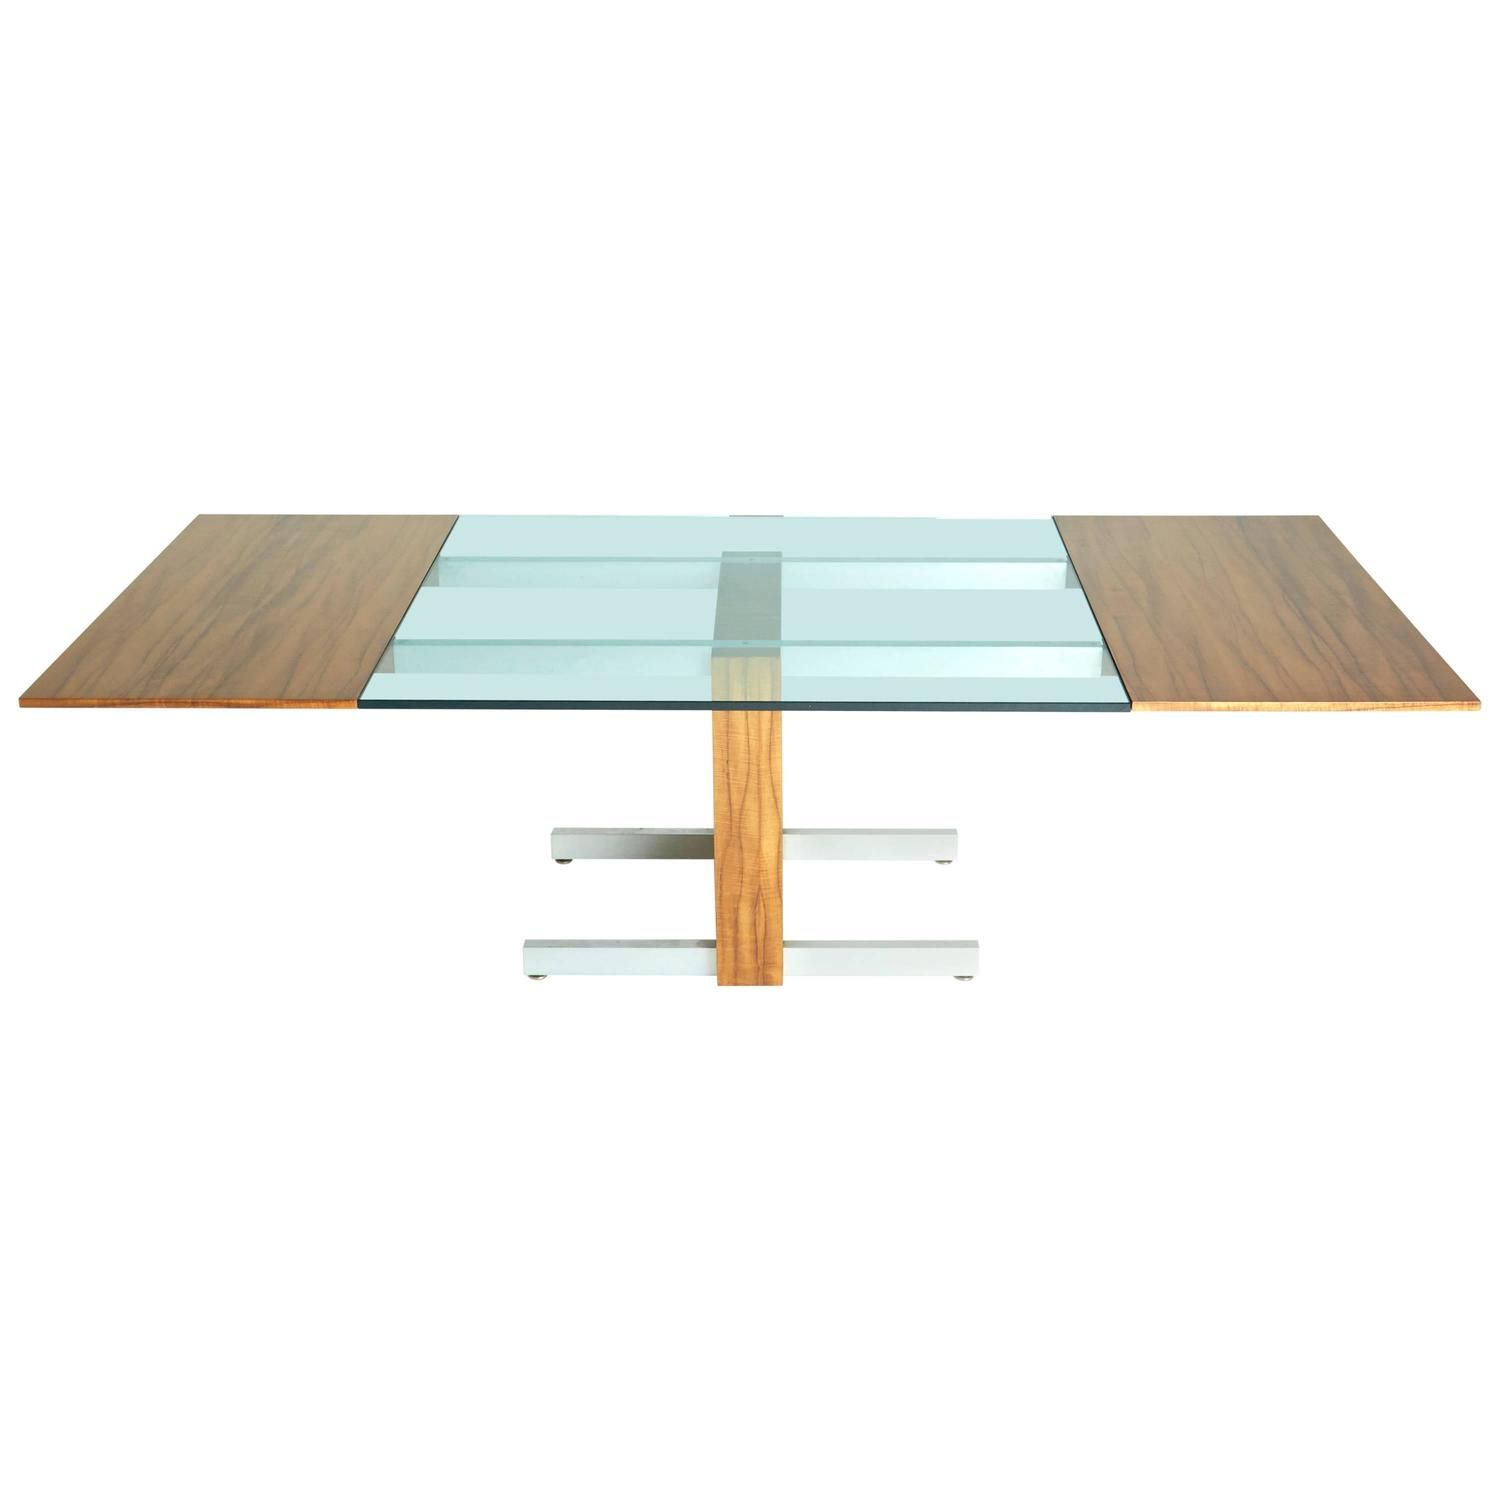 Vladimir Kagan Glass, Aluminum and Wood Dining or Conference Table | 1stdibs.com